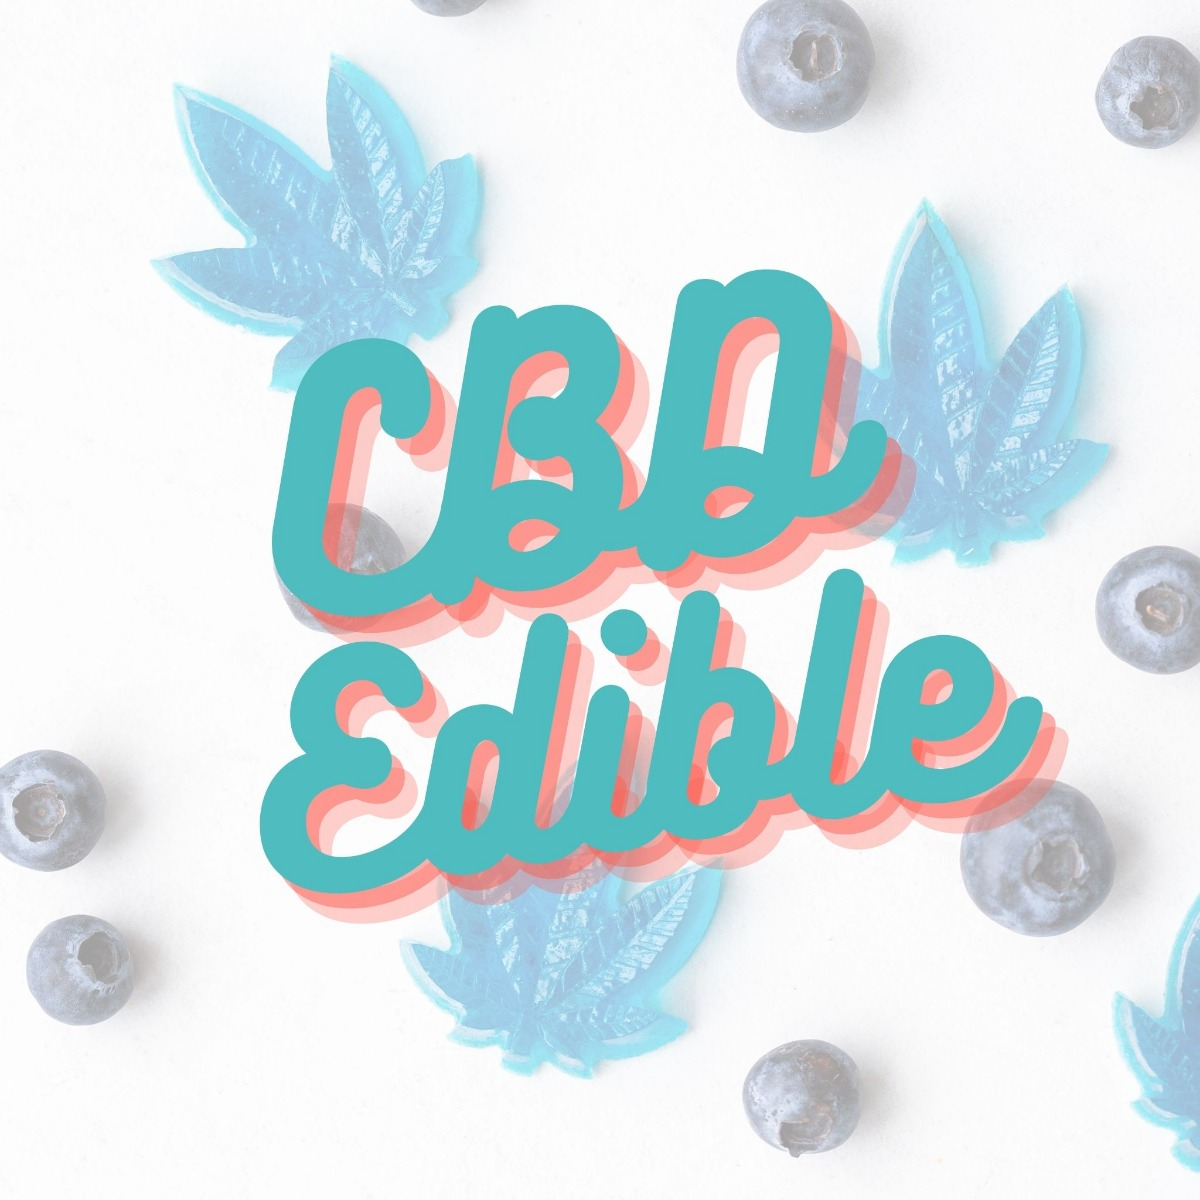 CBD edible text with cbd gummies in the background